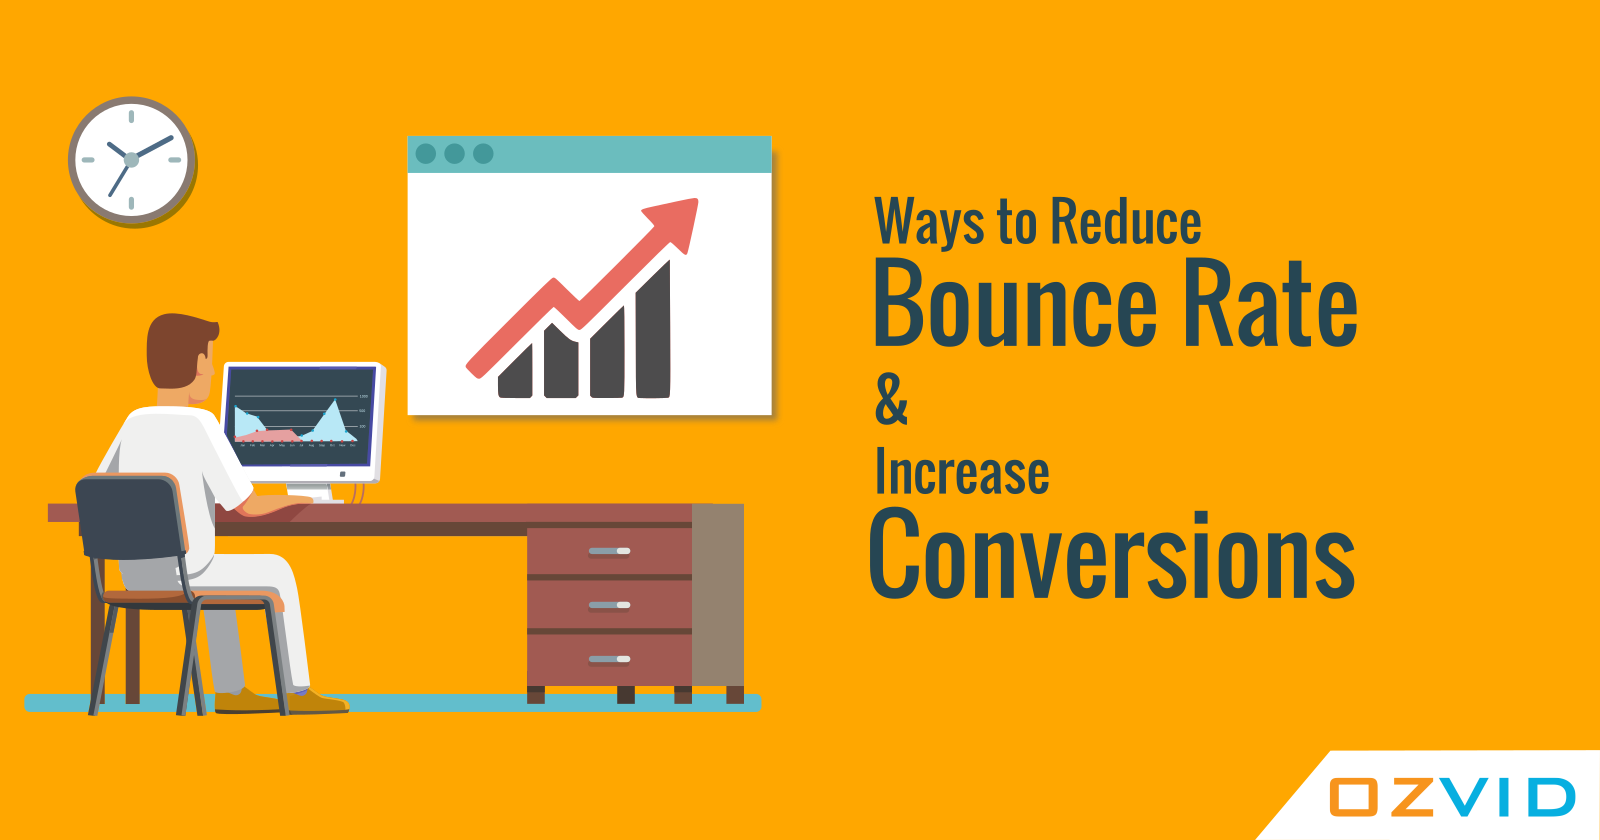 Proven Ways to Reduce Bounce Rate and Increase Conversions